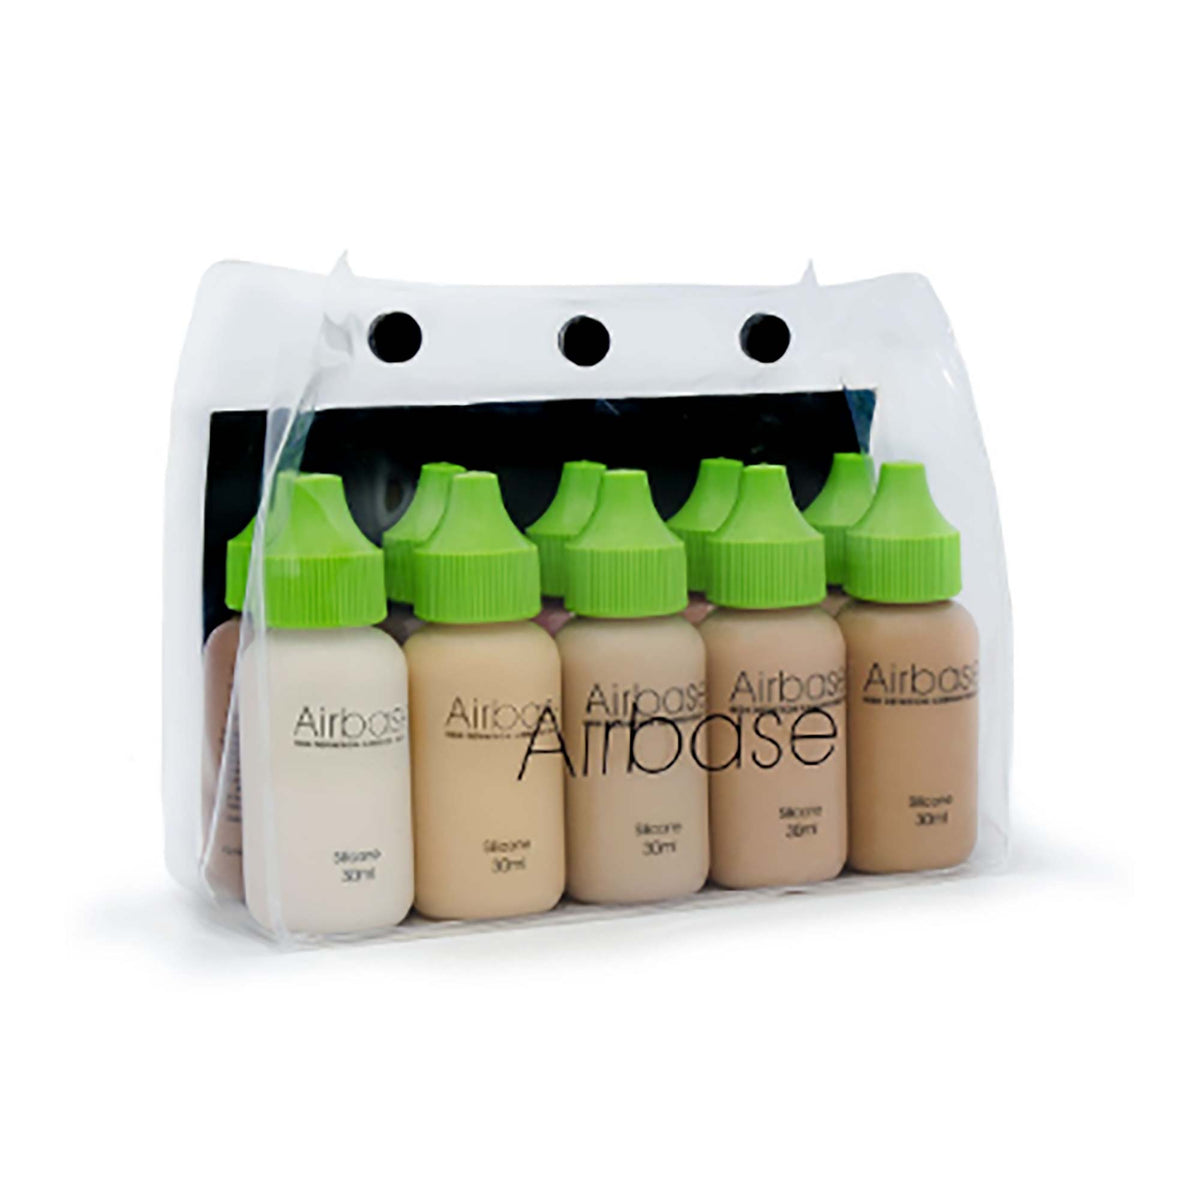 Airbase Ultra Silicone Airbrush Foundation Collection